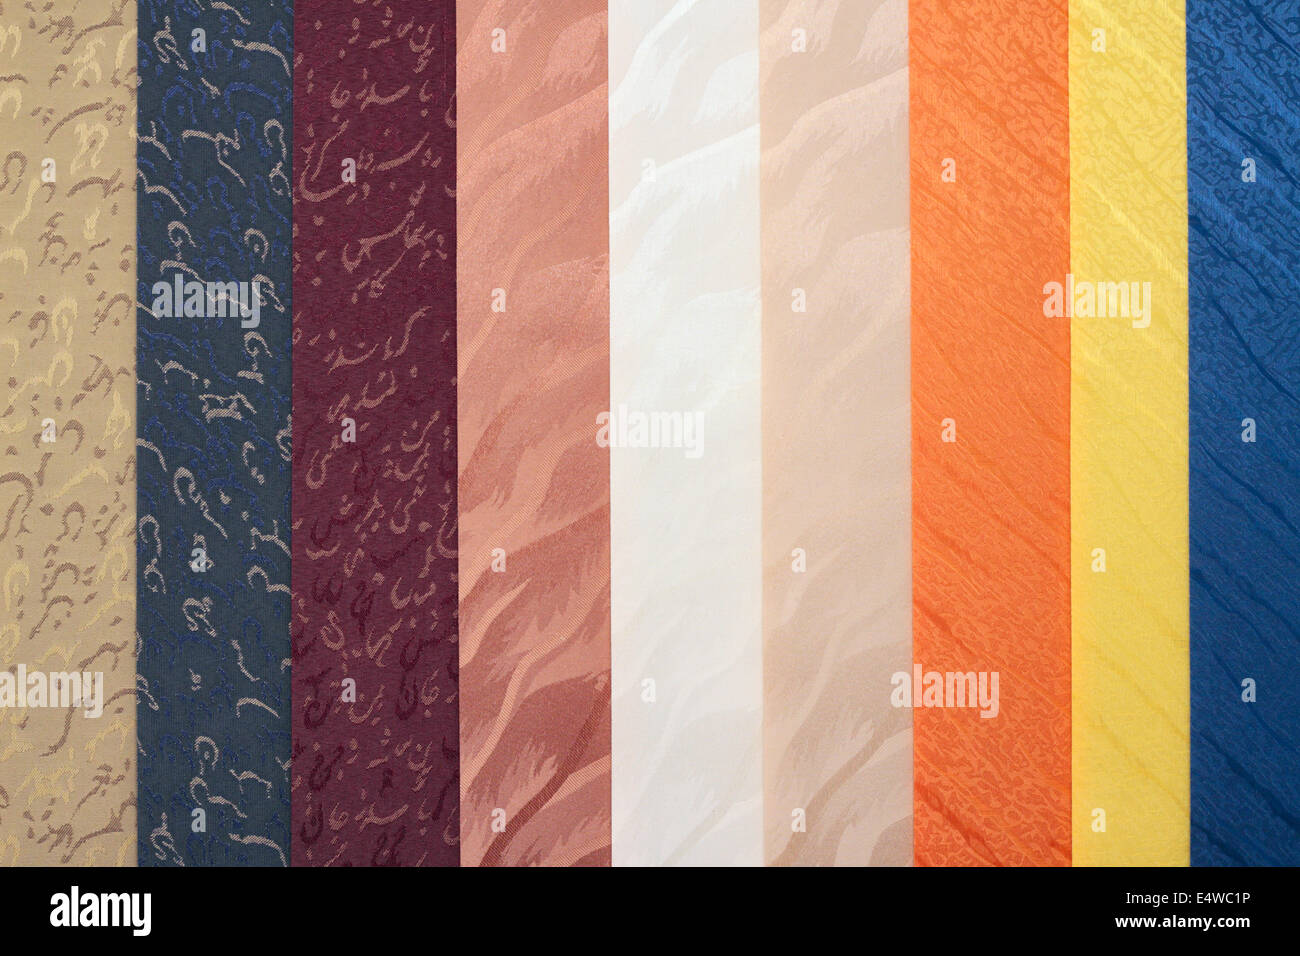 Multi-colored blinds - Stock Image